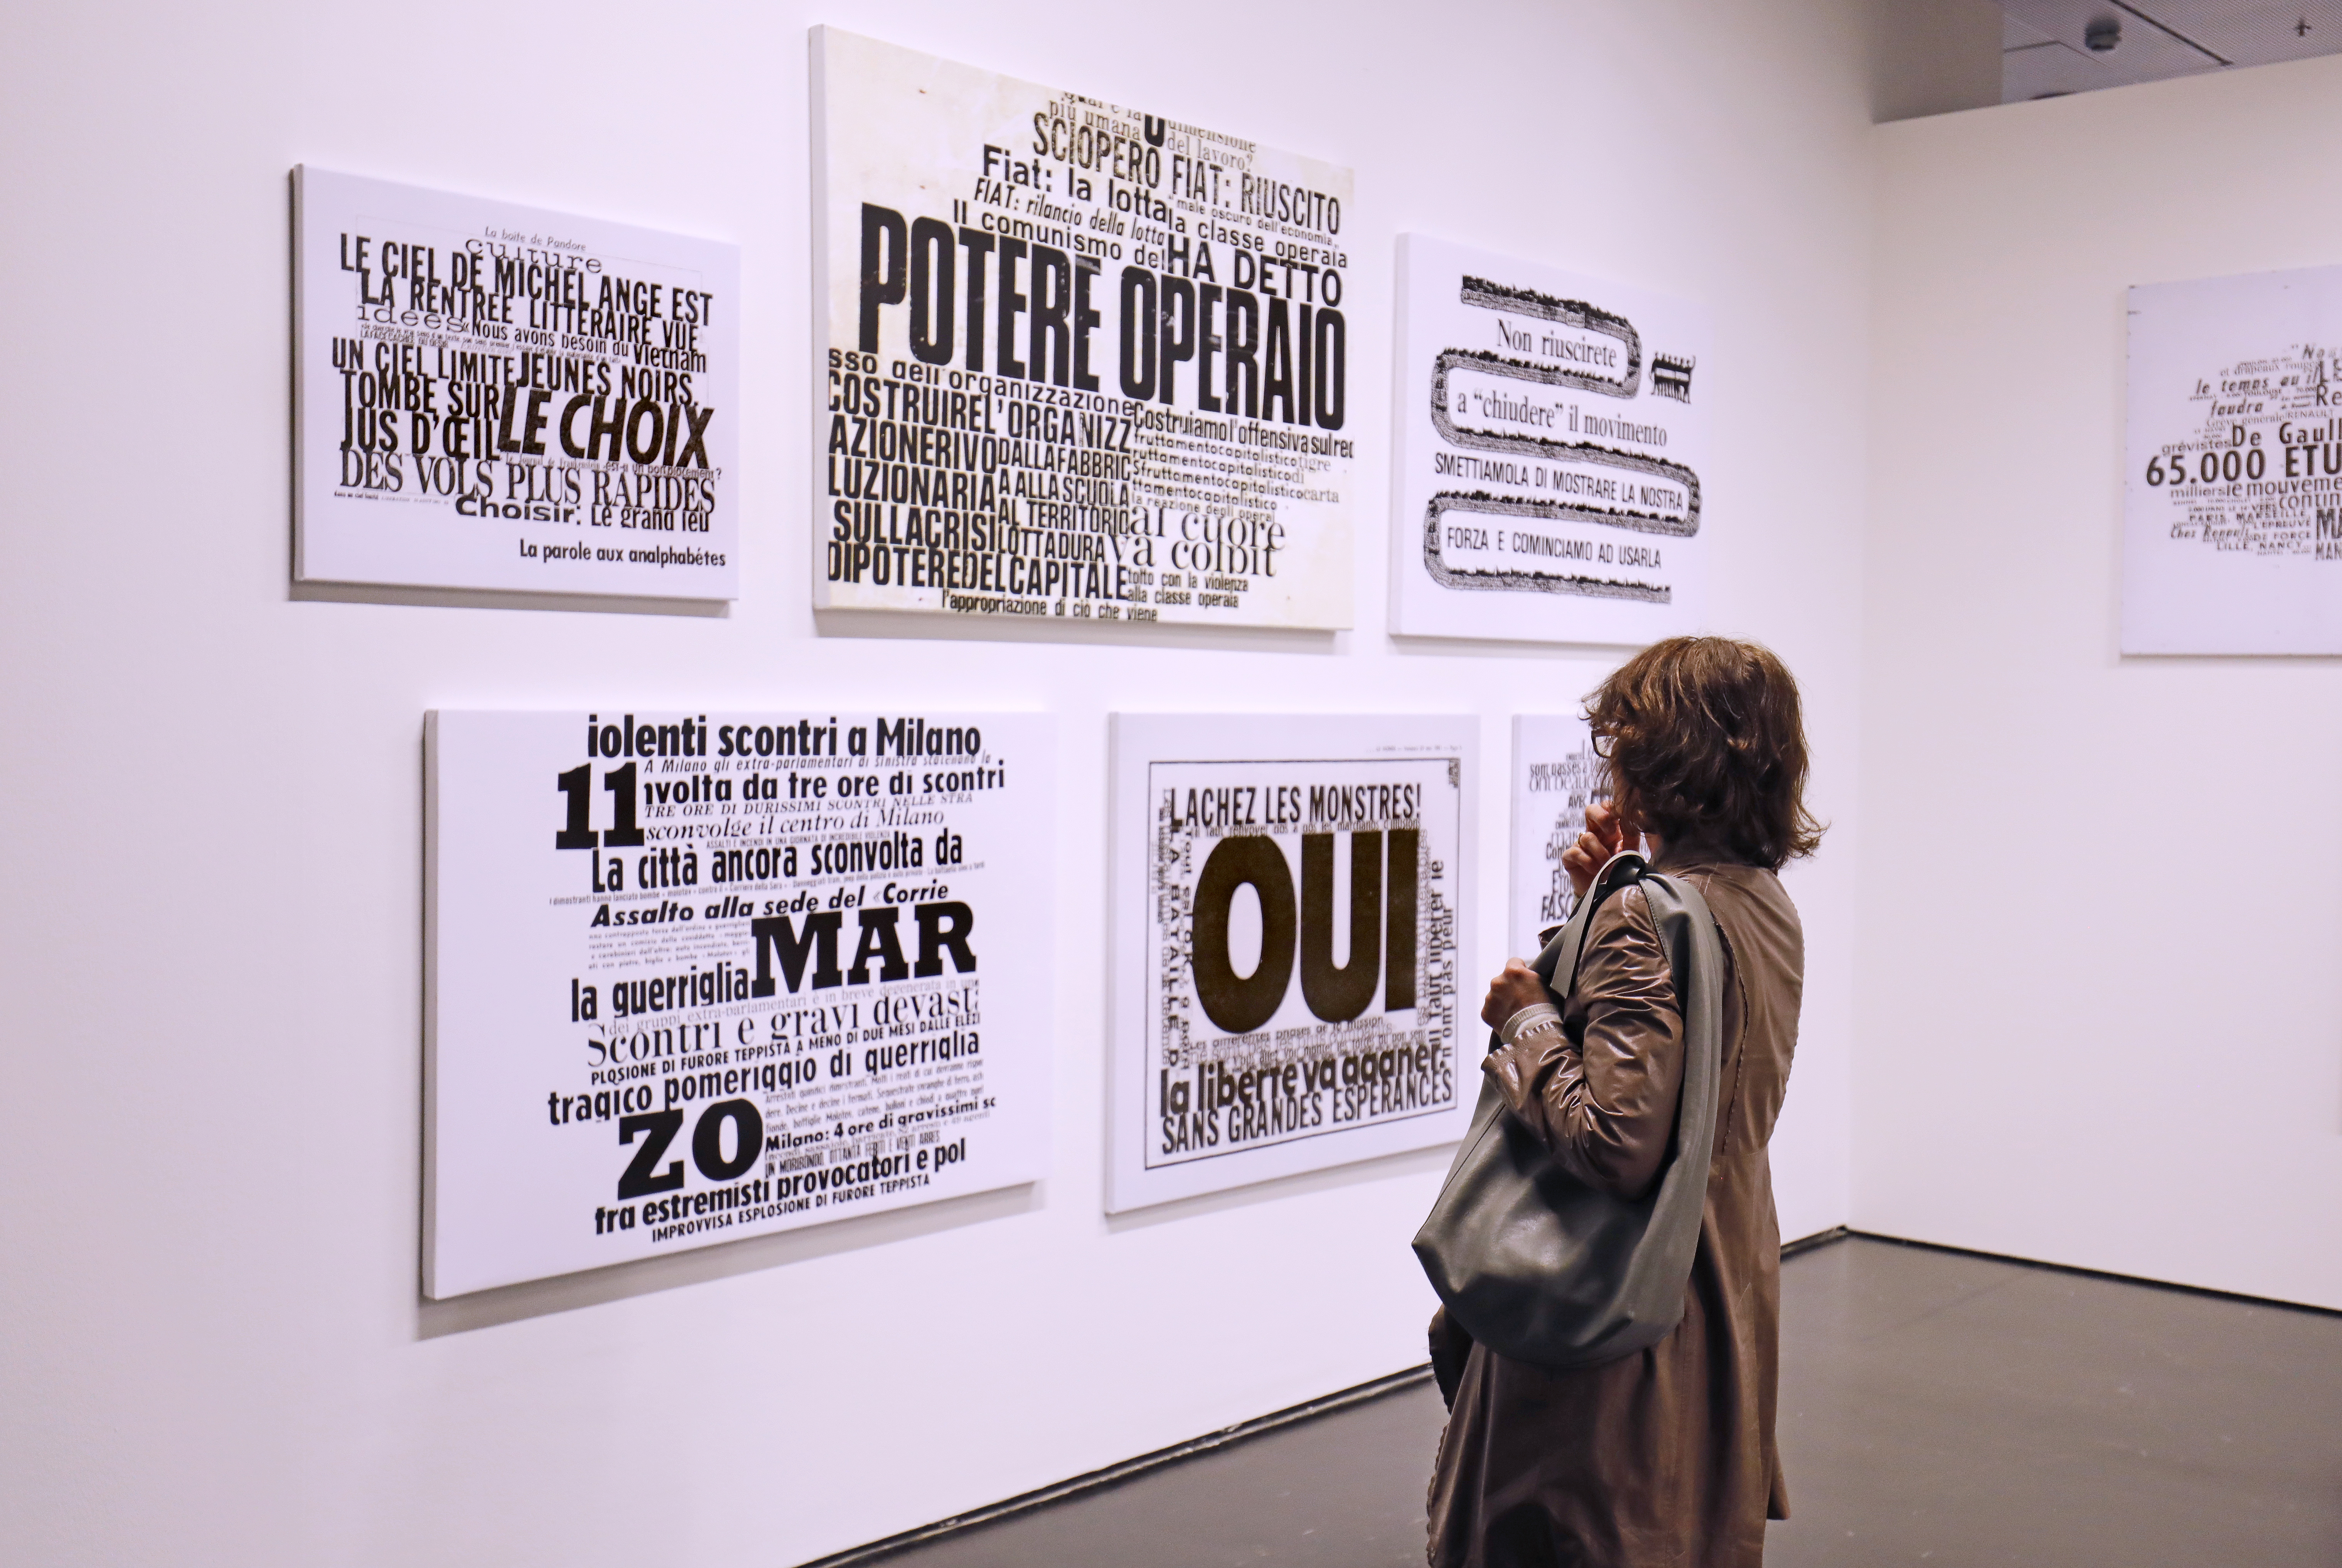 The picture shows the back of a woman looking at the collages of the artist Nanni Balestrini.